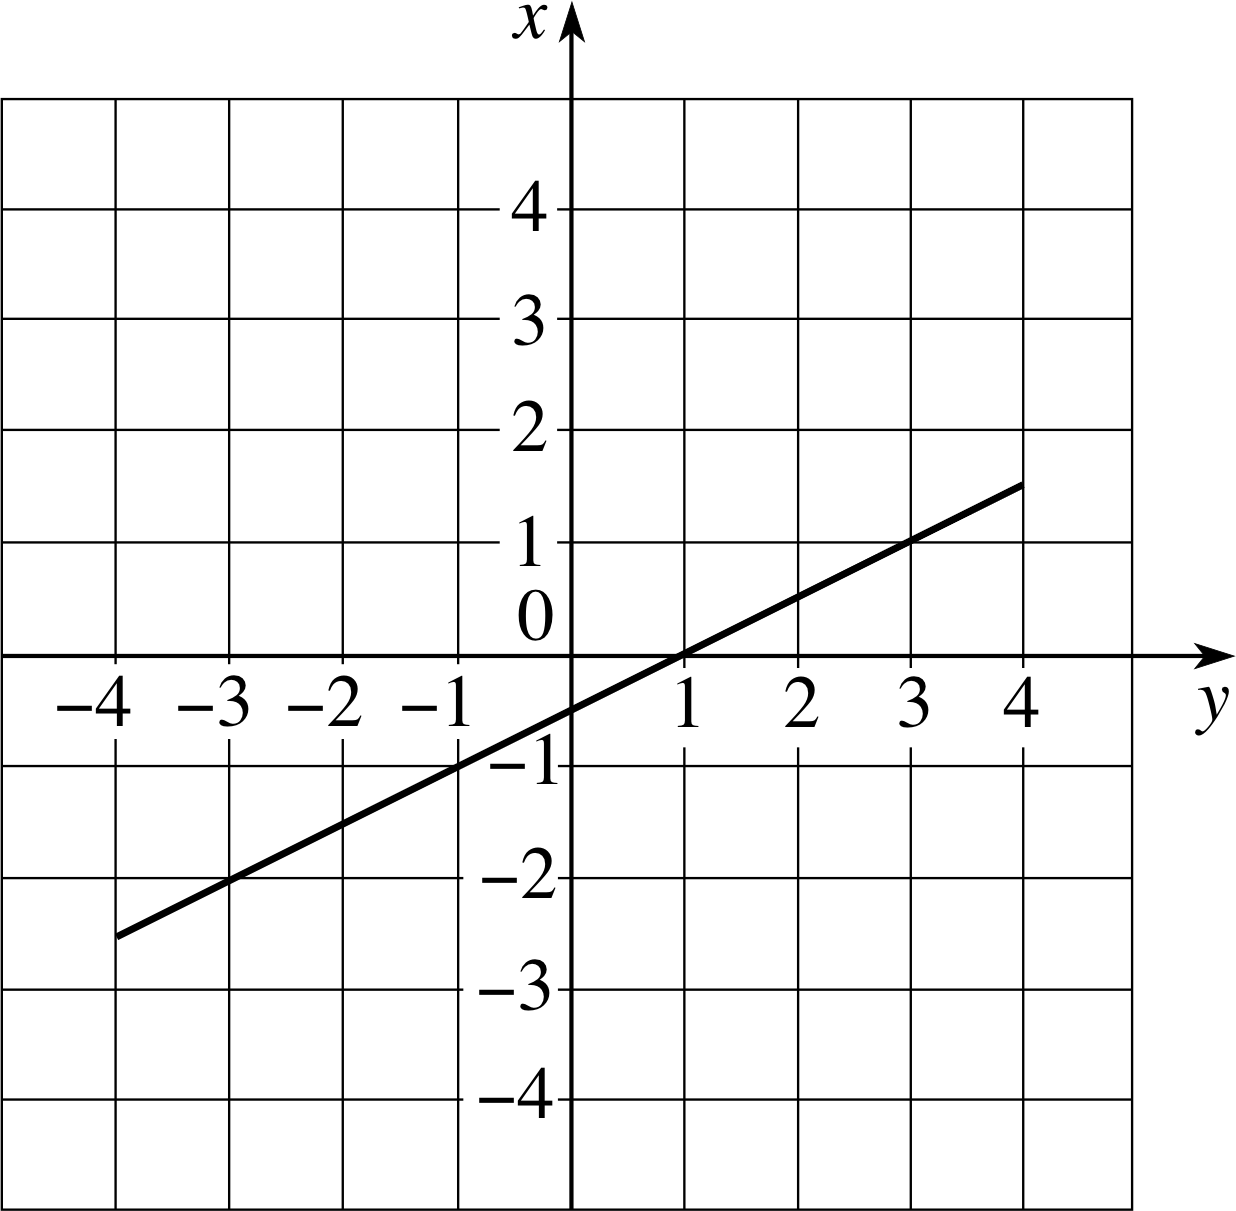 pplato | flap | math 1.3: functions and graphs